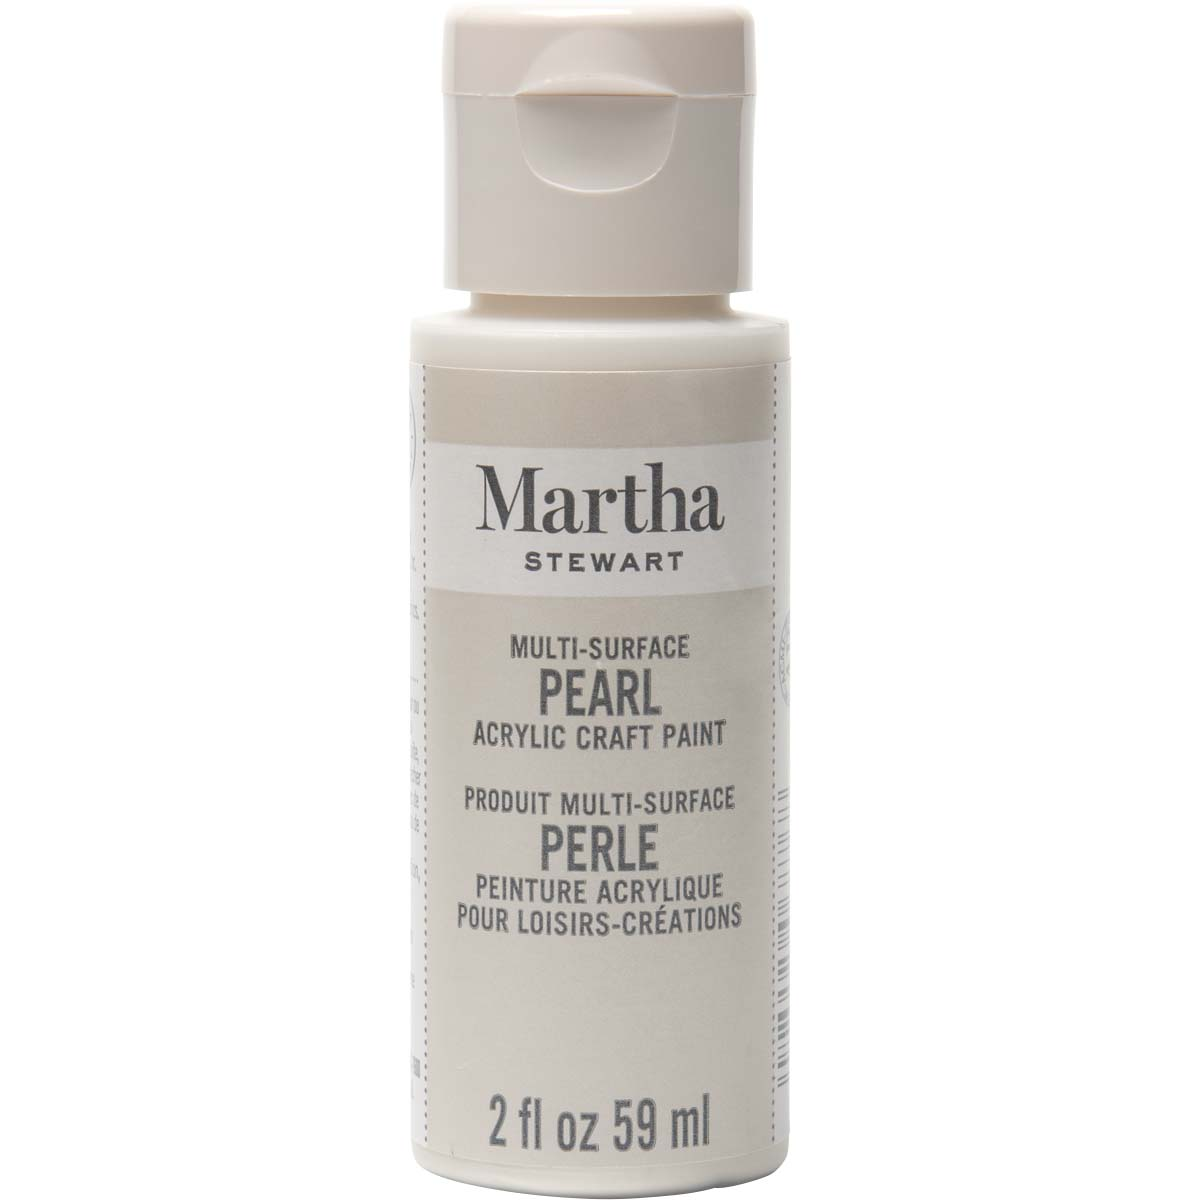 Martha Stewart ® Multi-Surface Pearl Acrylic Craft Paint - Mother of Pearl, 2 oz. - 32127CA